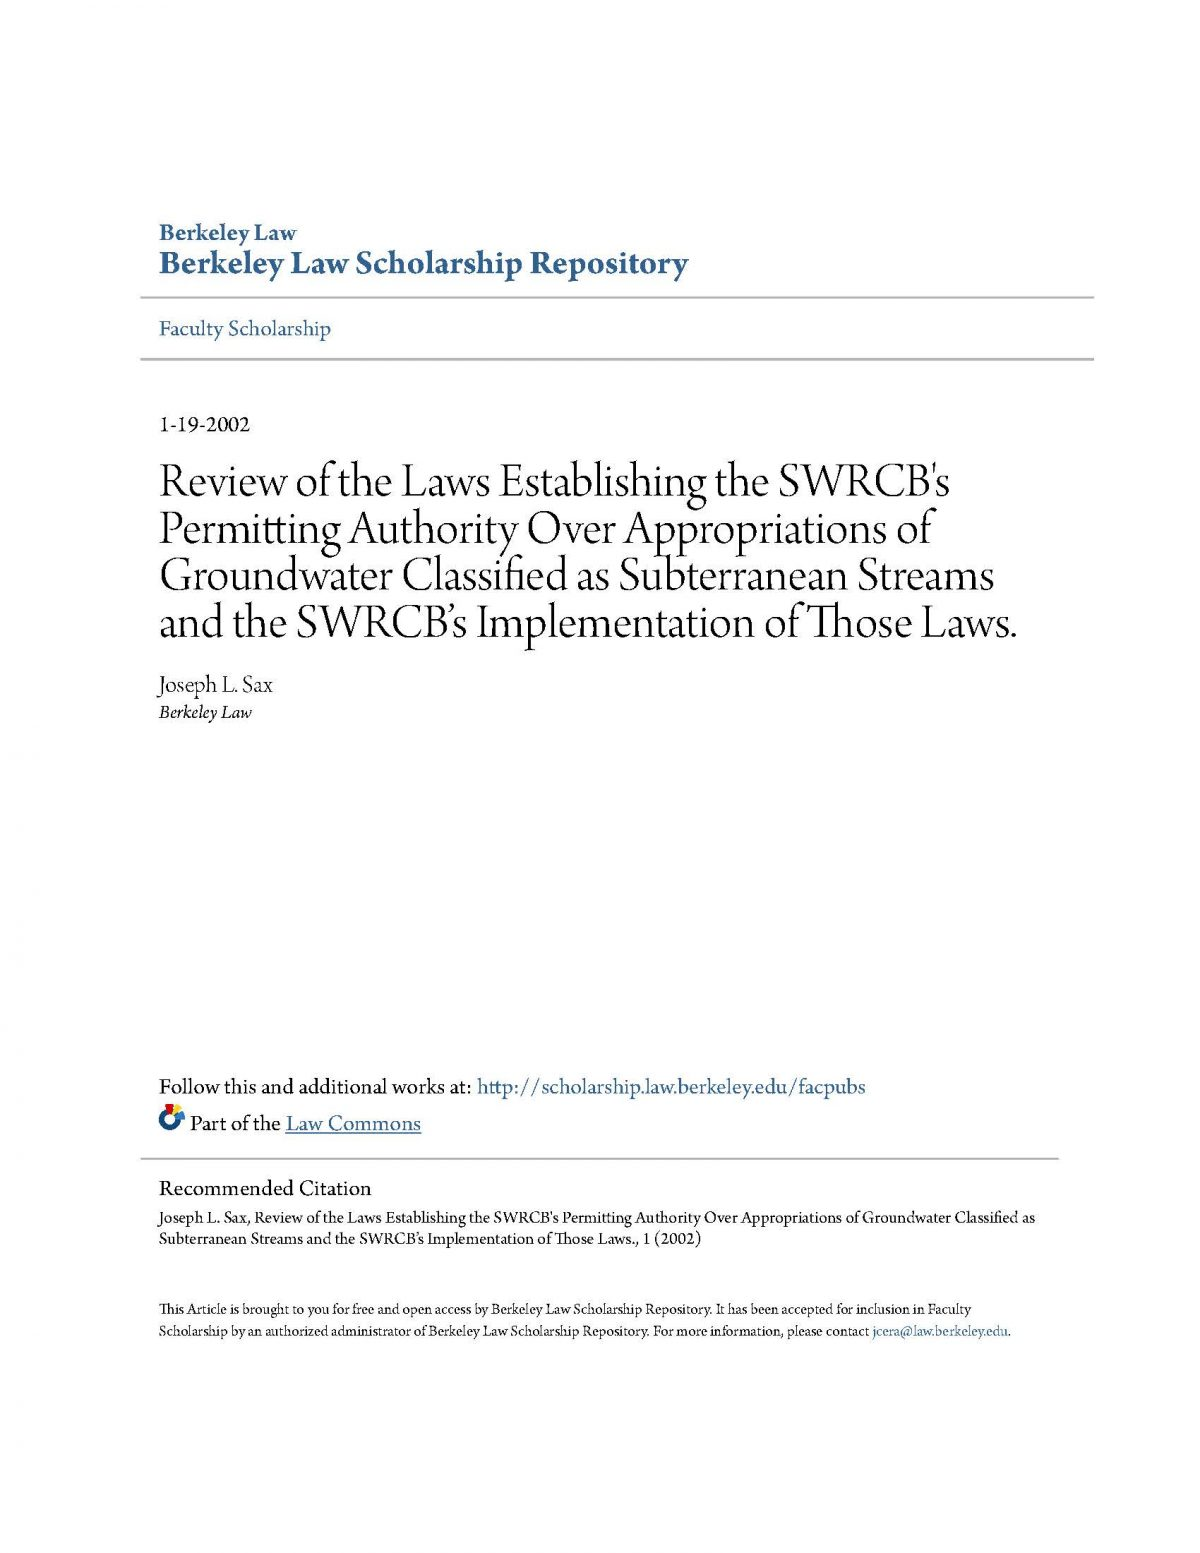 Review of the Laws Establishing the SWRCB's Permitting Authority over Appropriations of Groundwater Classified as Subterranean Streams and the SWRCB's Implementation of those Laws